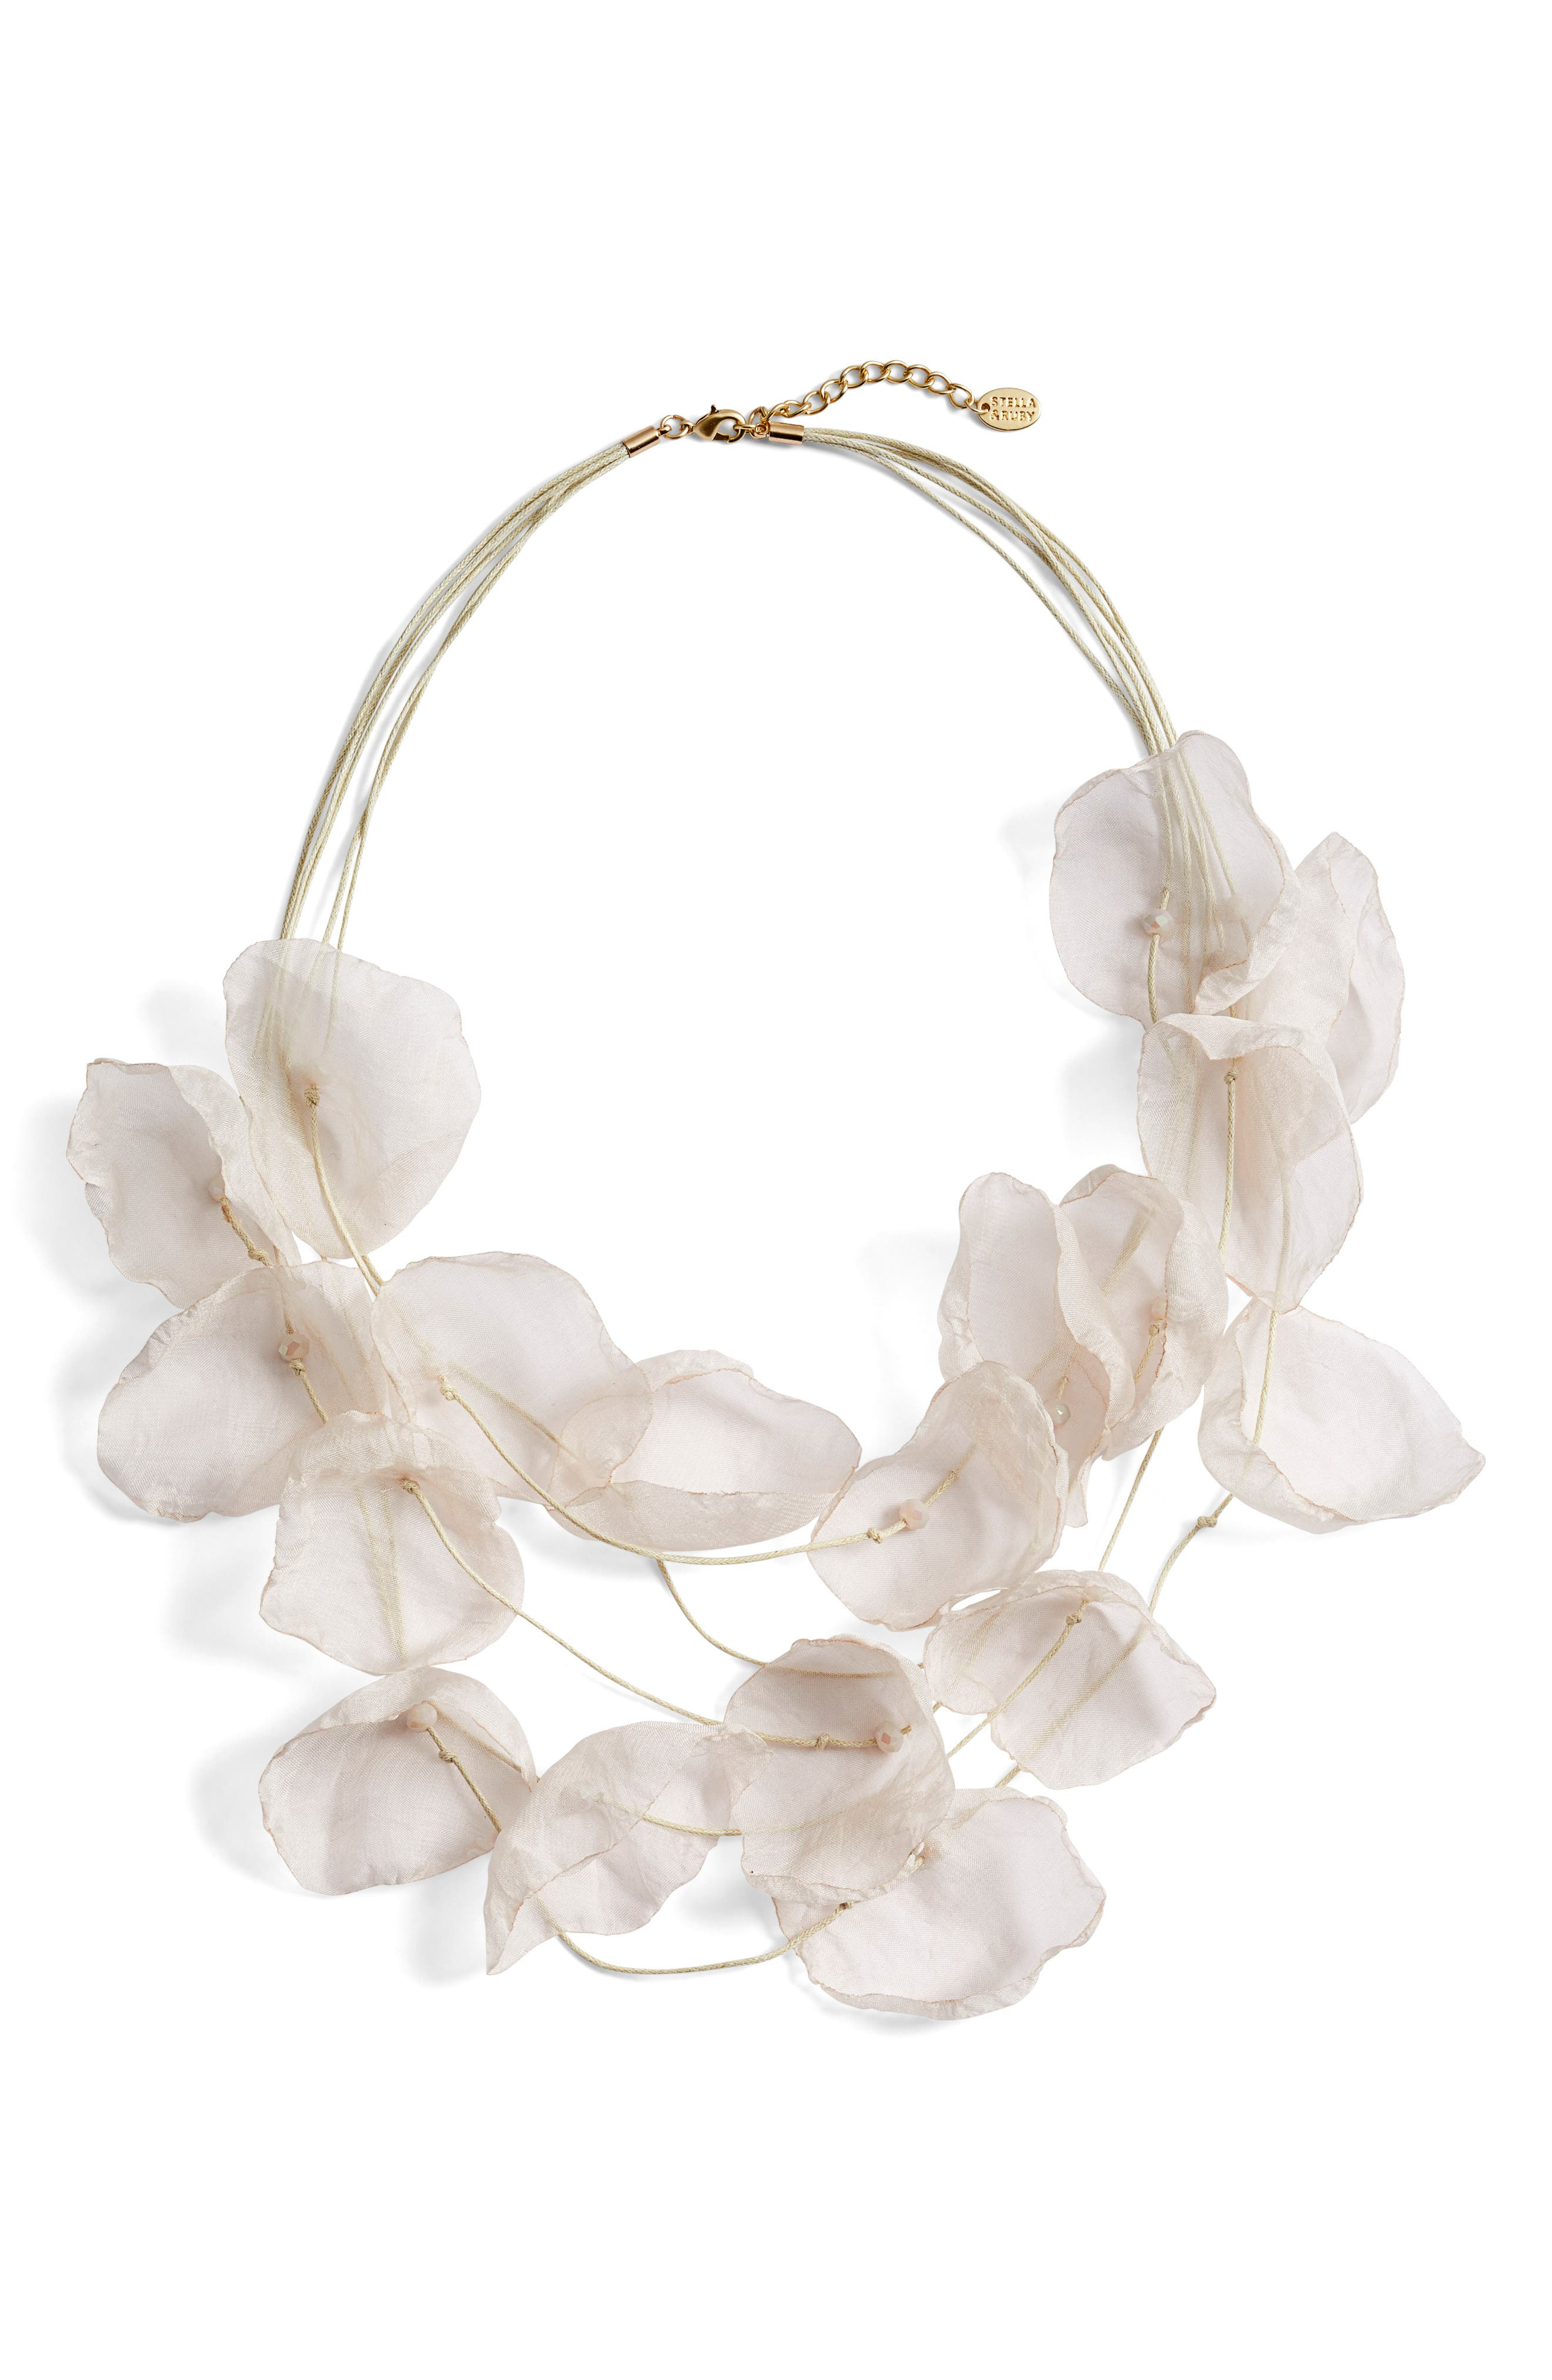 Chiffon Flower Statement Necklace,                             Main thumbnail 1, color,                             IVORY